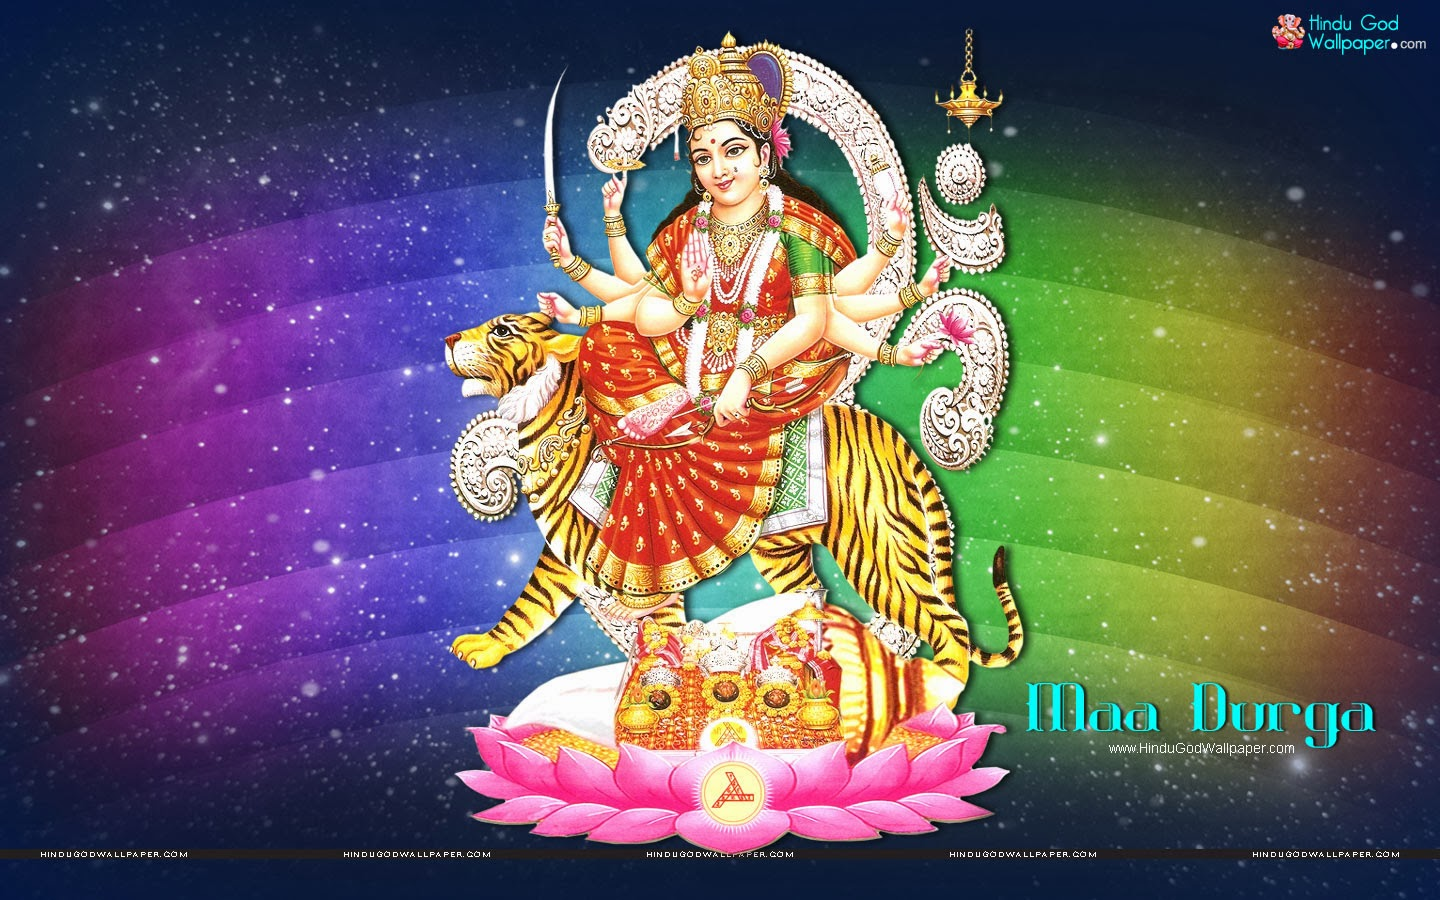 jai mata di wallpaper hd wallpapers God wallpaper hd 1440x900